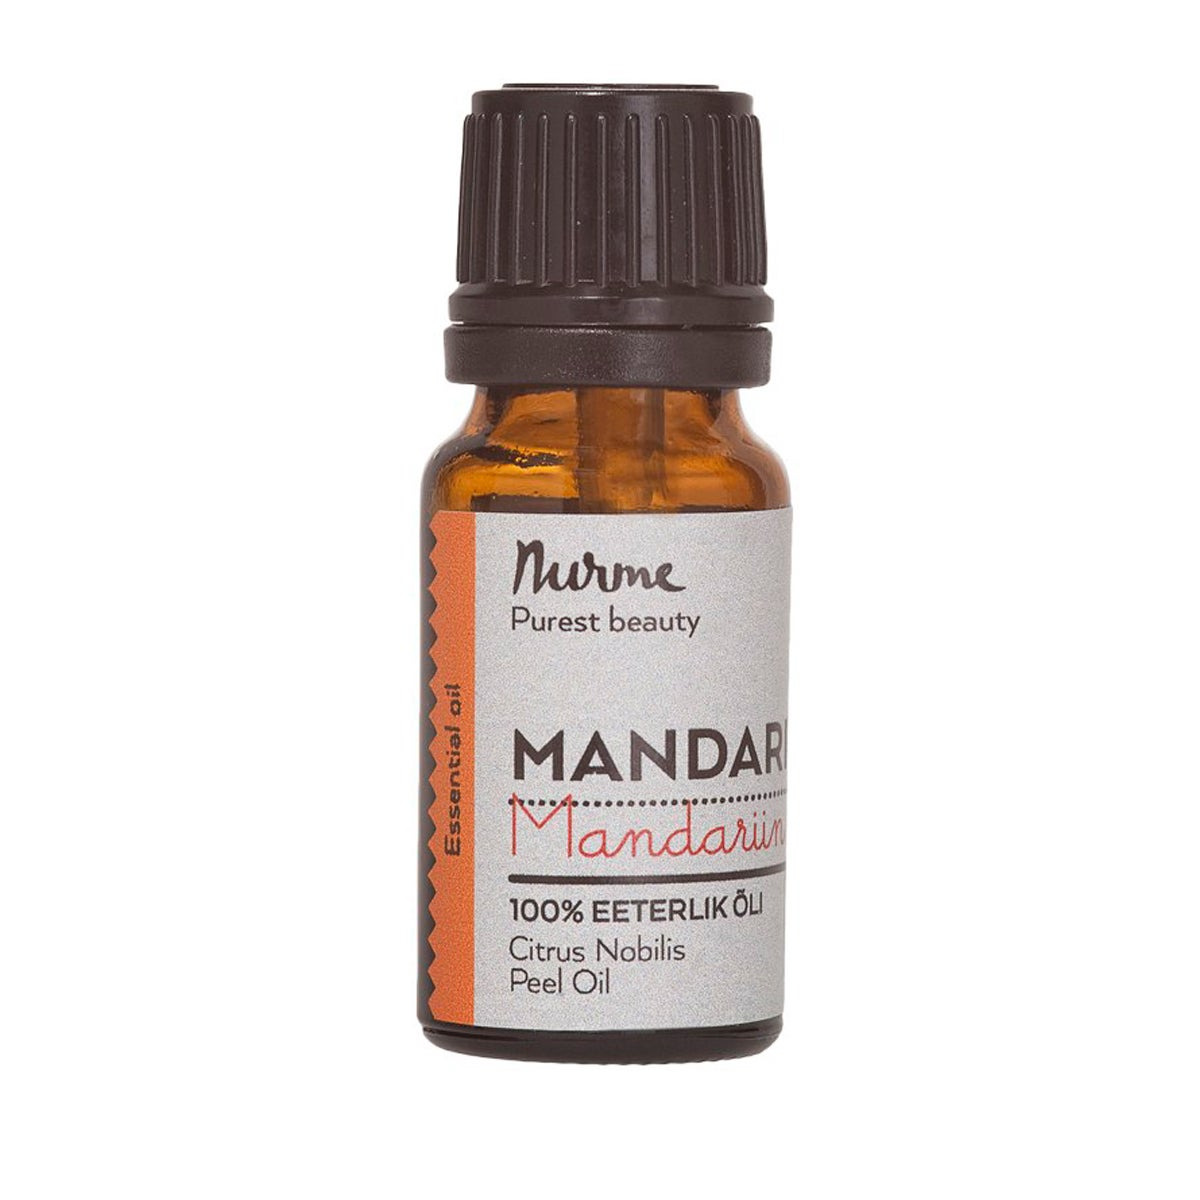 Nurme Mandarin Essential Oil